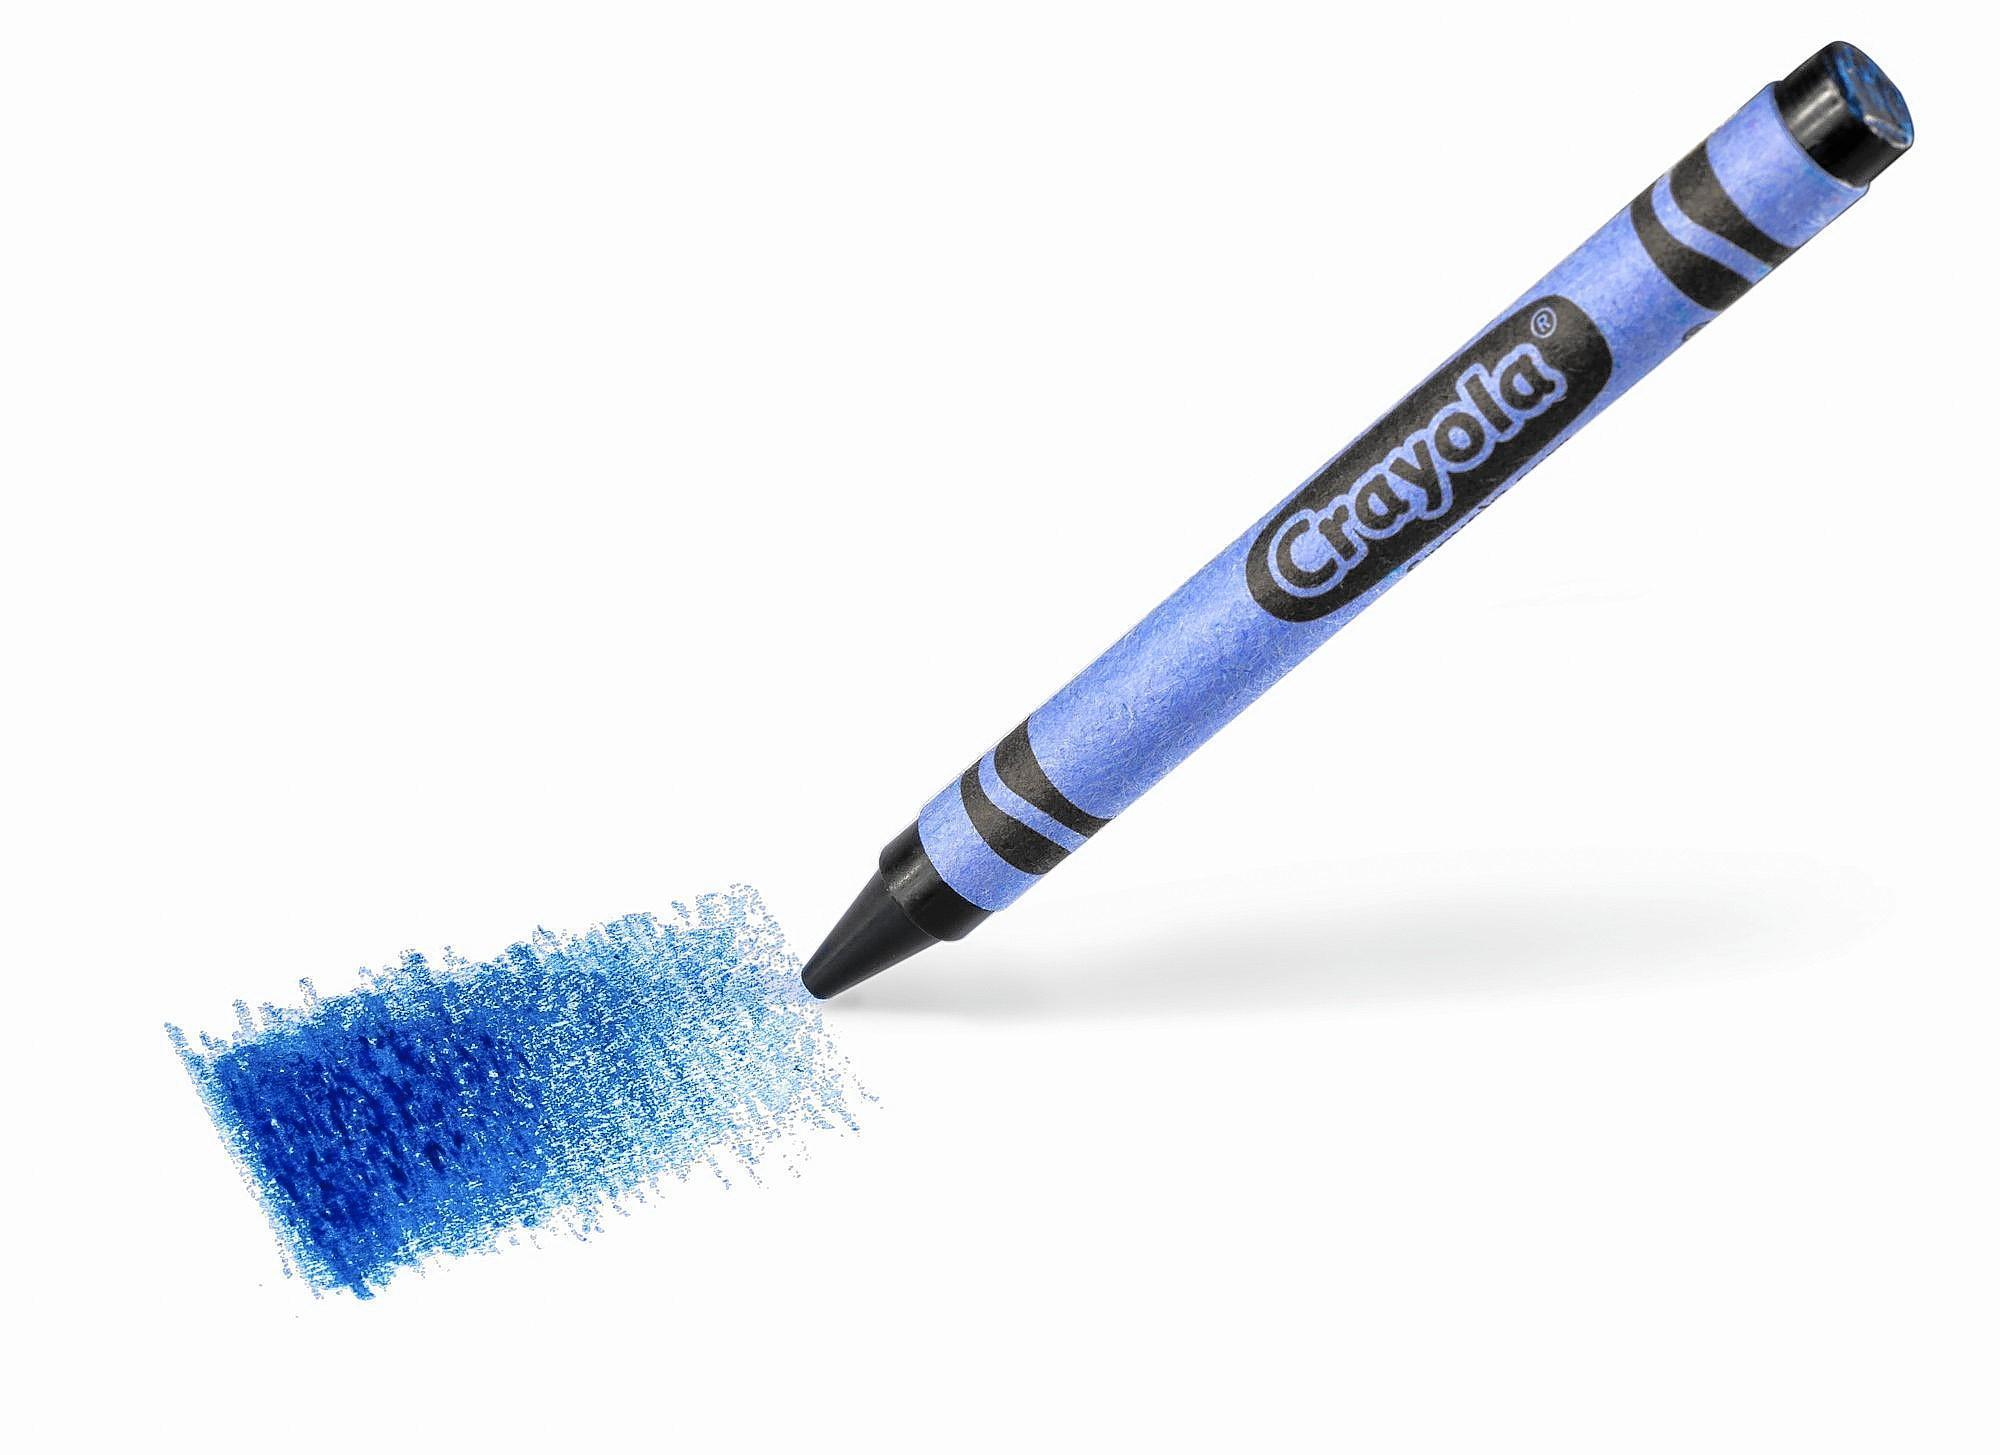 And the new Crayola crayon is.... - The Morning Call